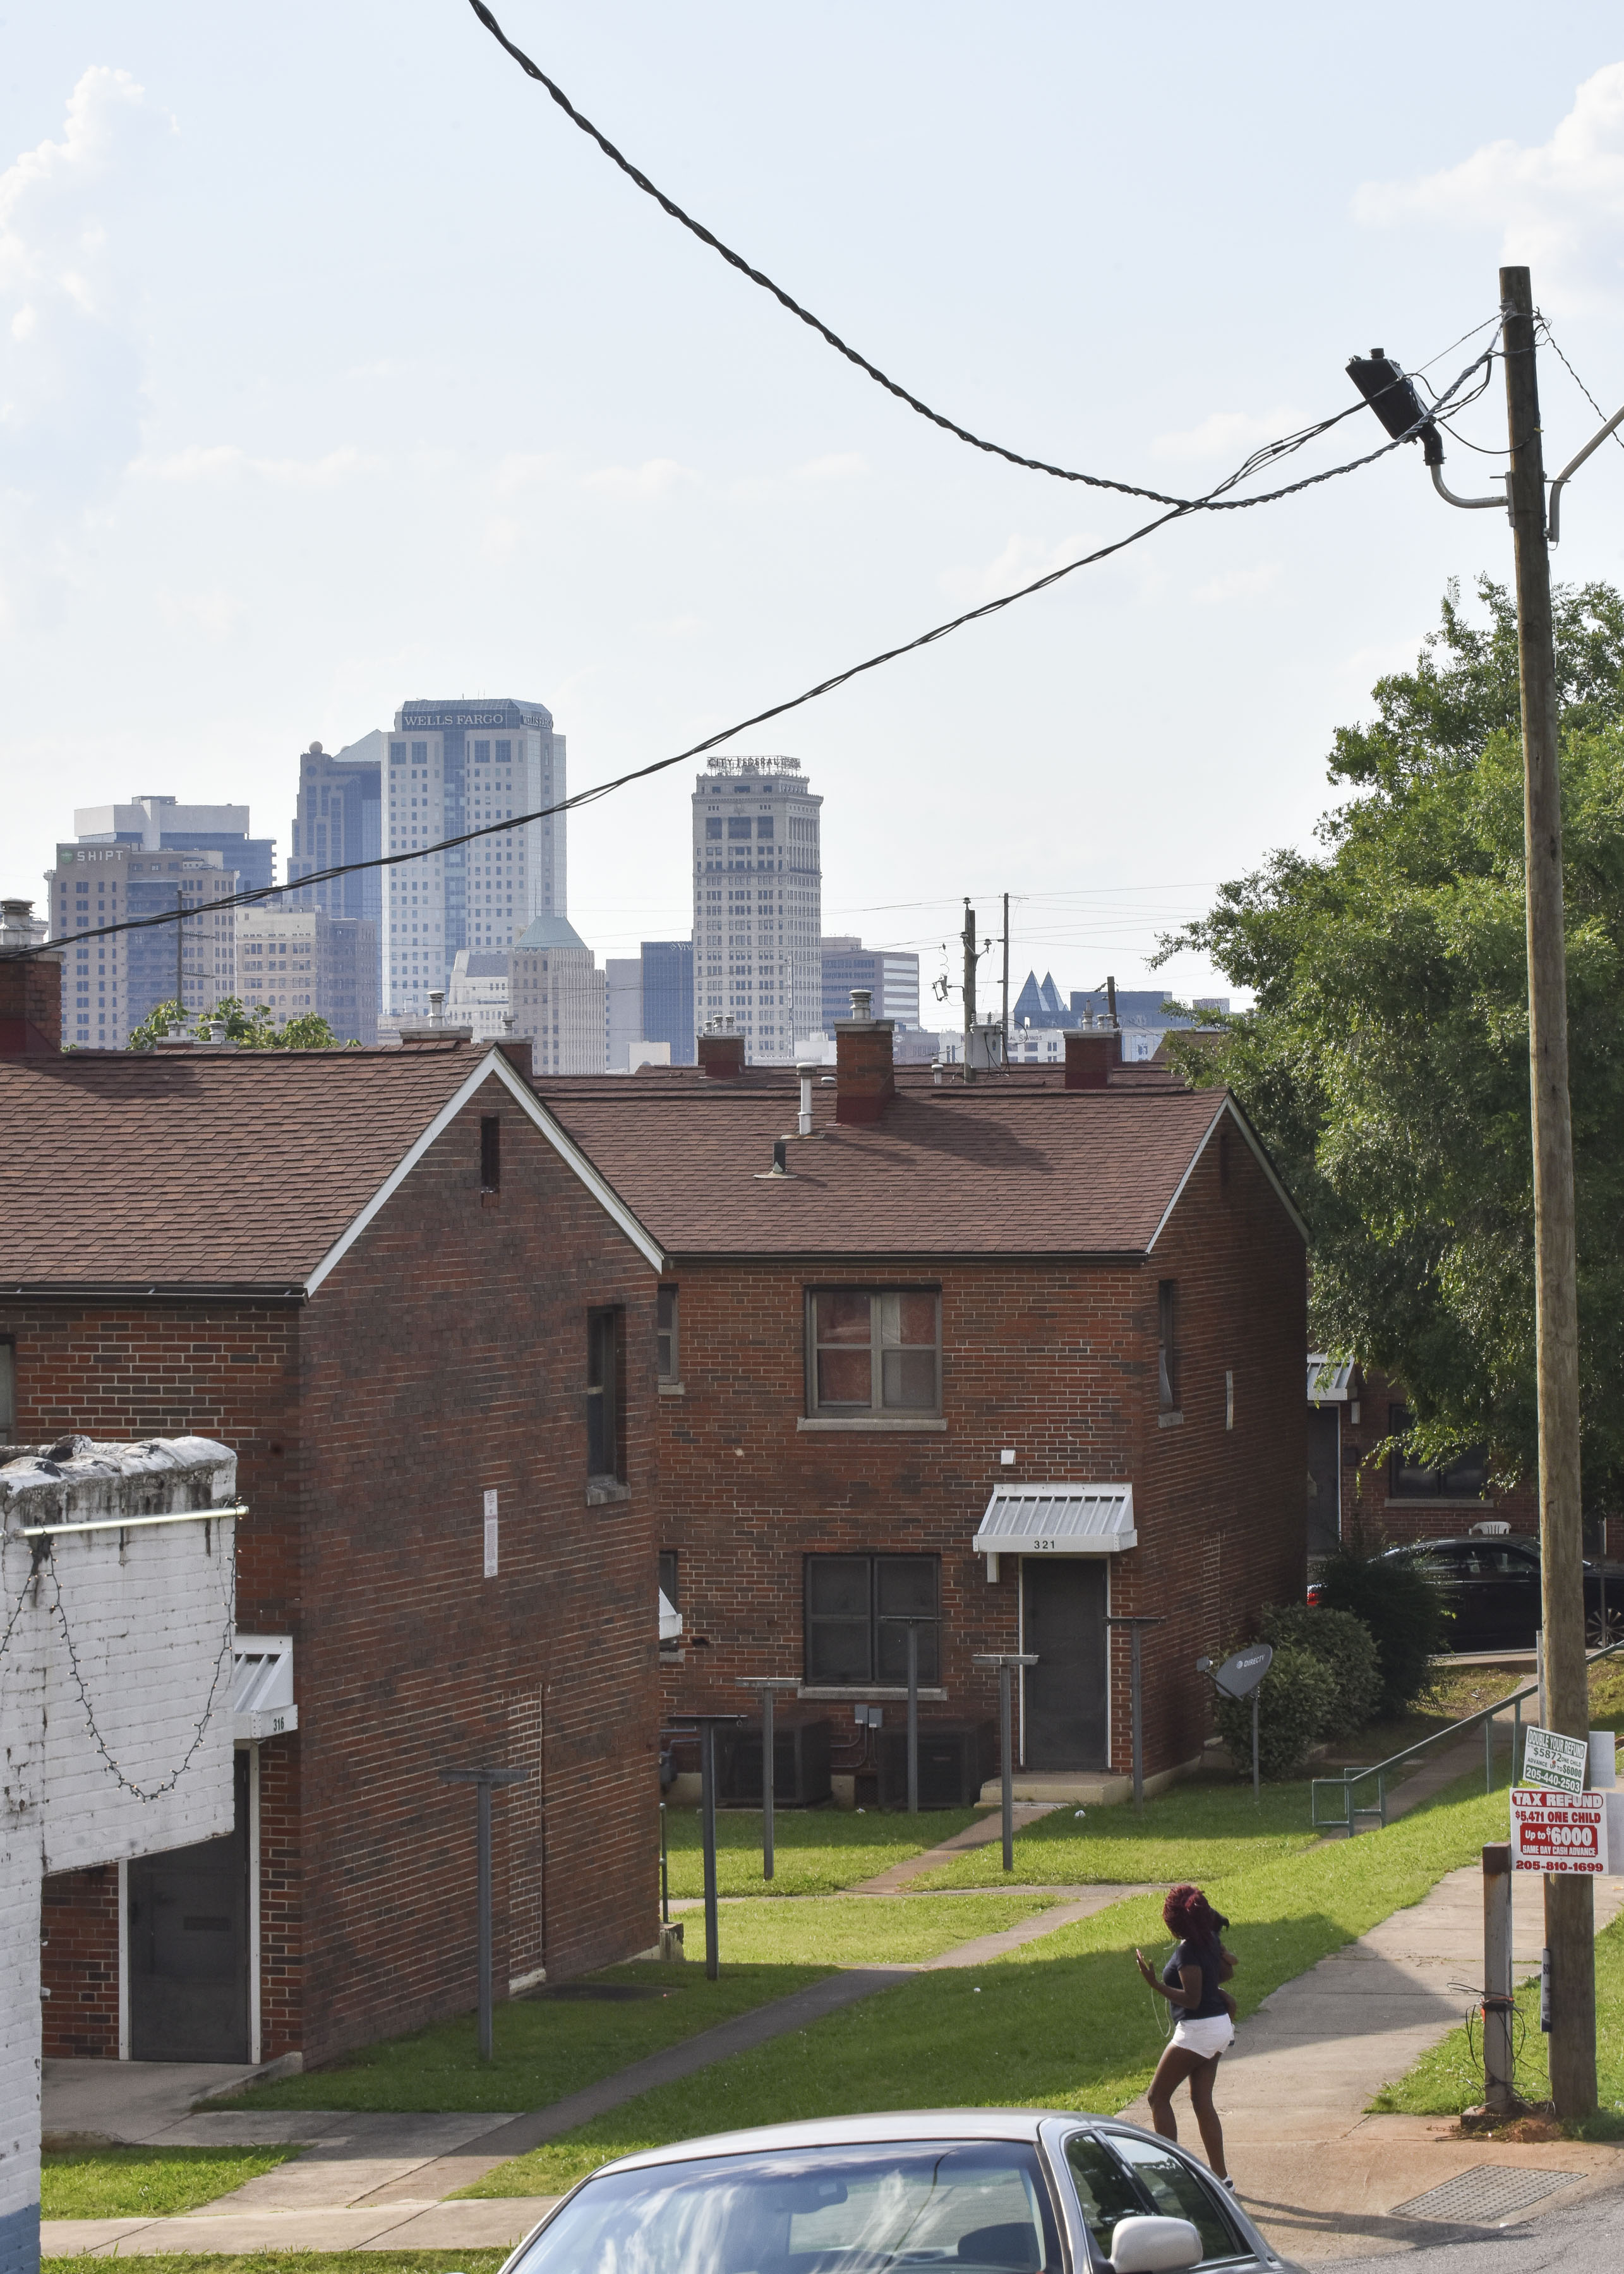 Renewal of Southtown Court Builds Brighter Future | The Birmingham Times